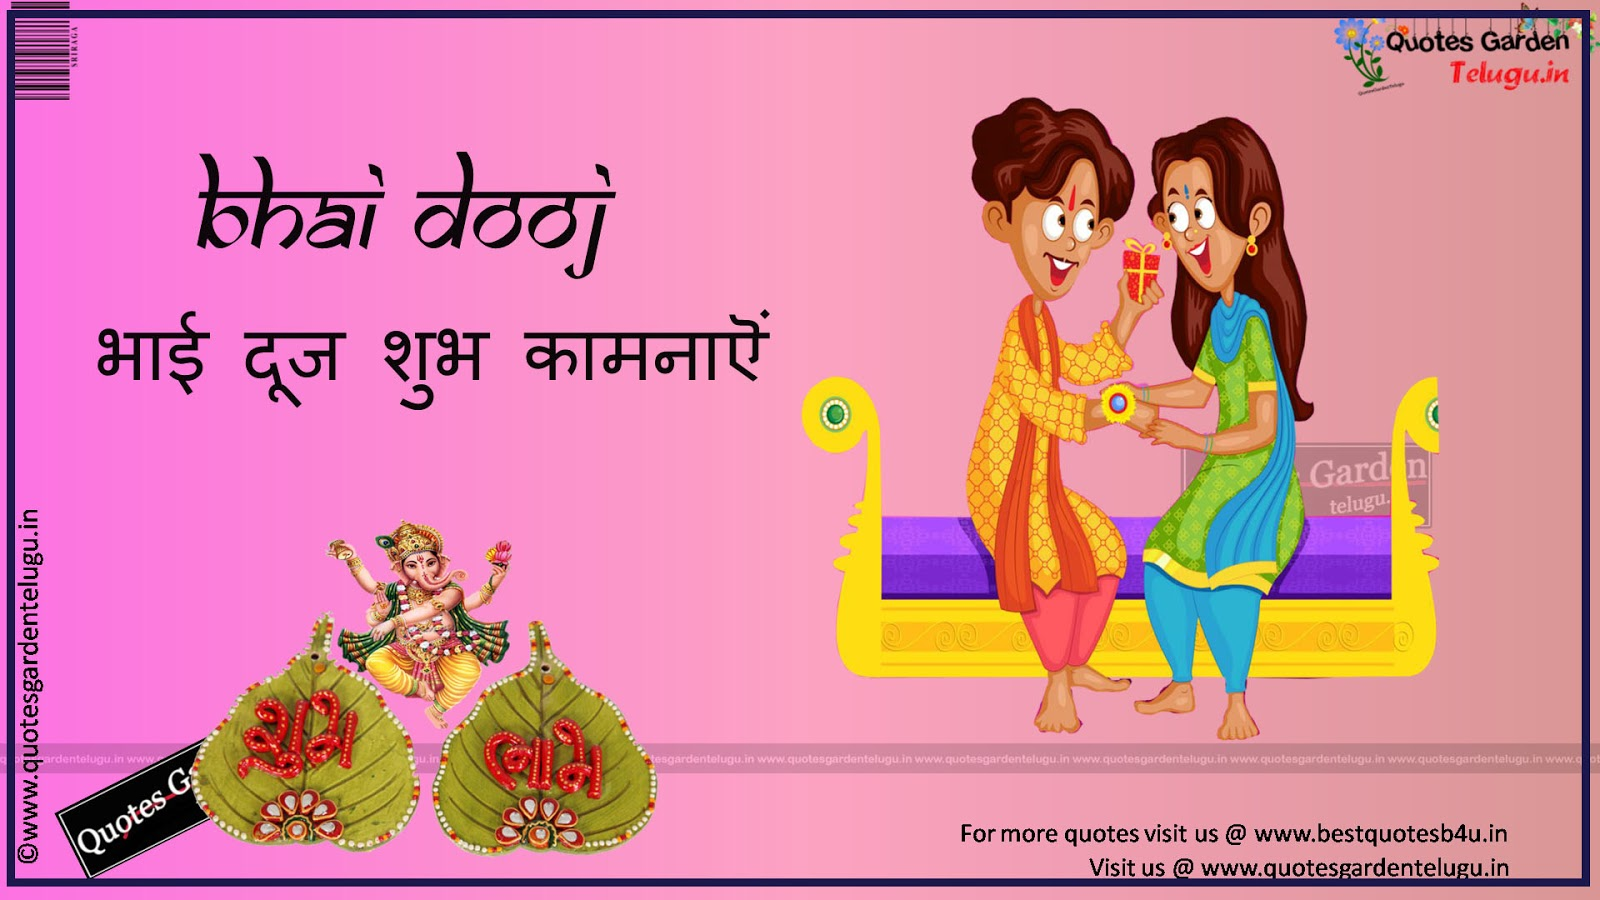 Bhai Dooj Greetings Quotes Wallpapers Information In Hindi Quotes